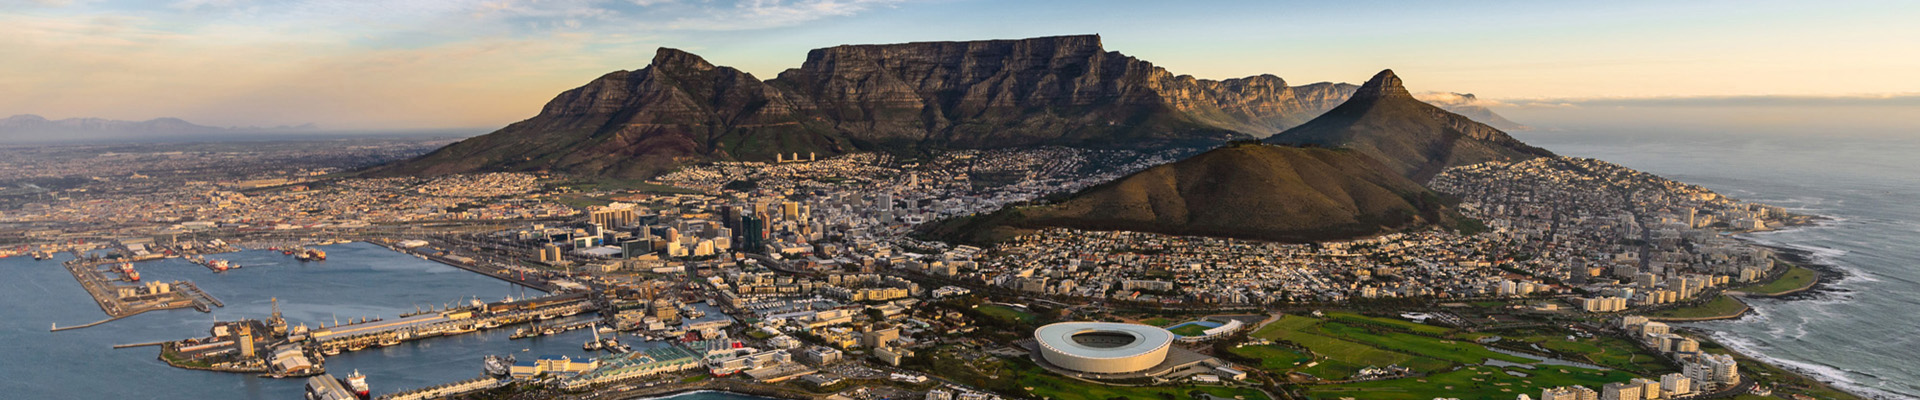 Visit beautiful Cape Town for work or holiday with CemAir